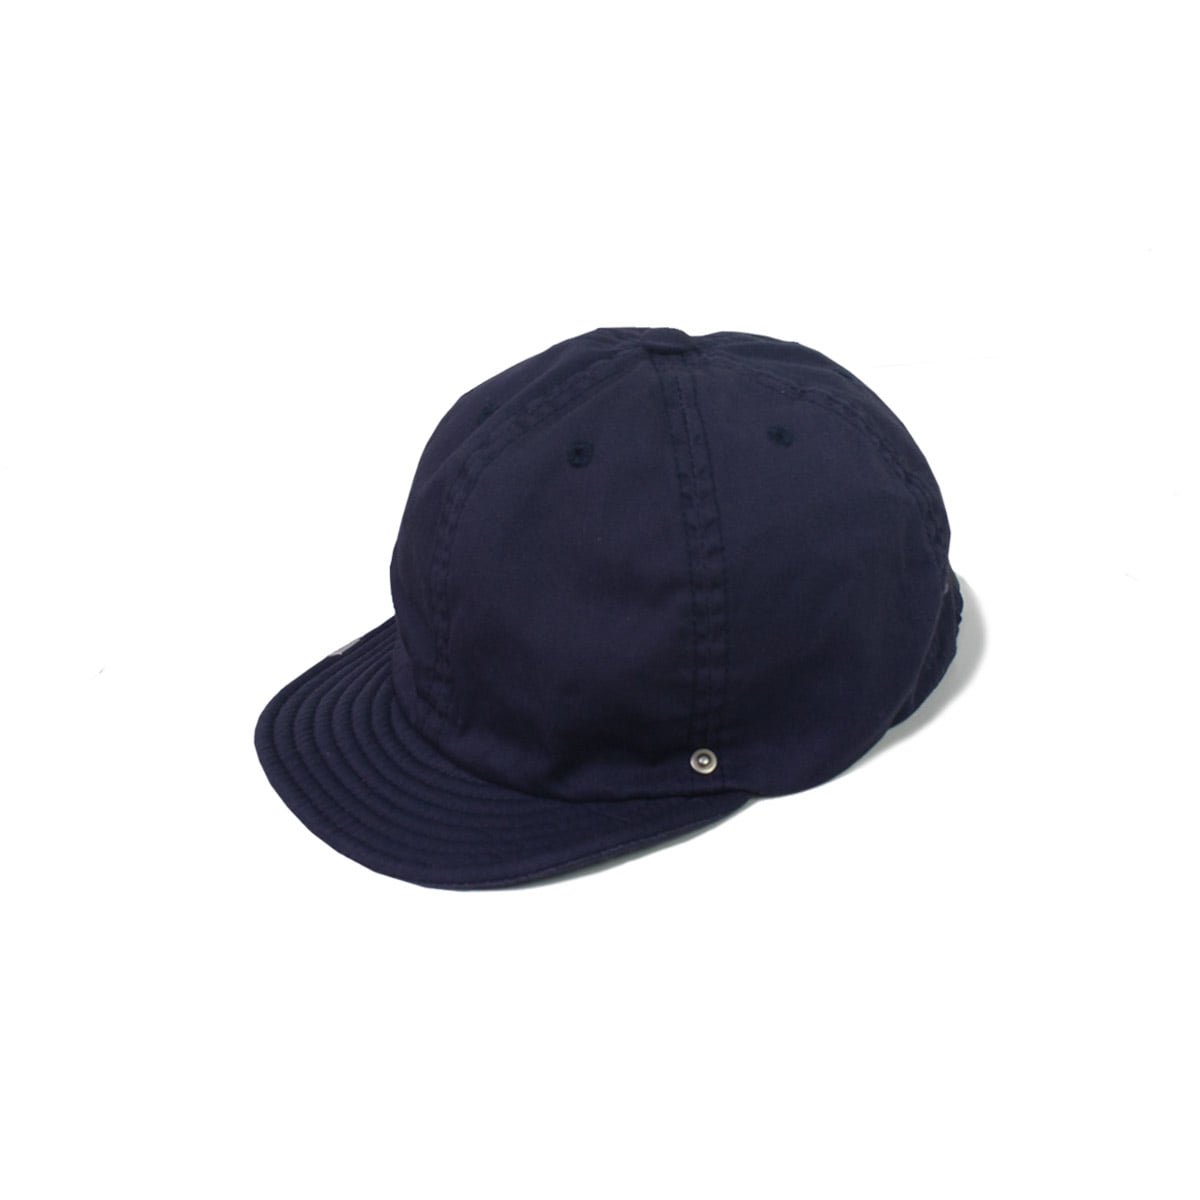 [DECHO] BALL CAP -CHINO- 'NAVY'